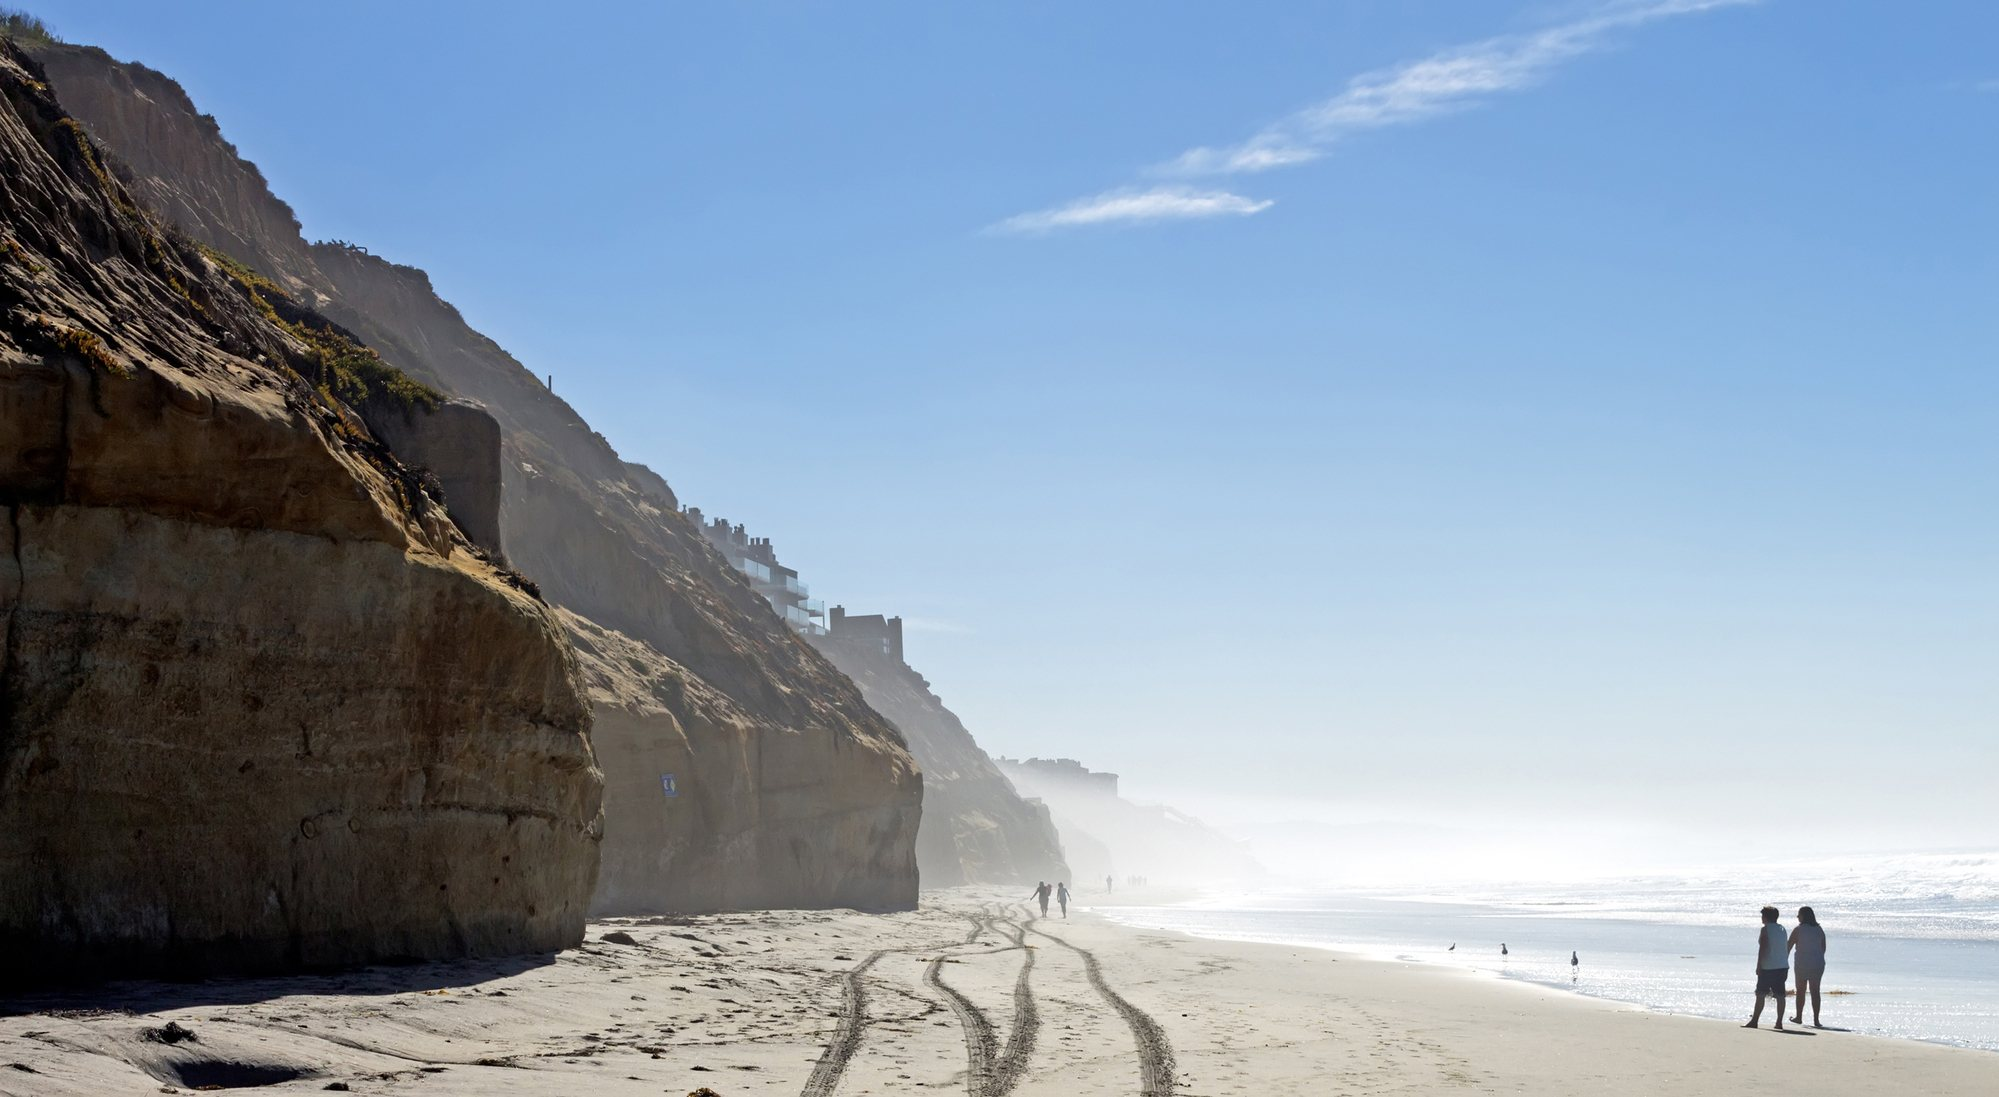 Enjoy seven miles of beaches in Carlsbad, CA with kids